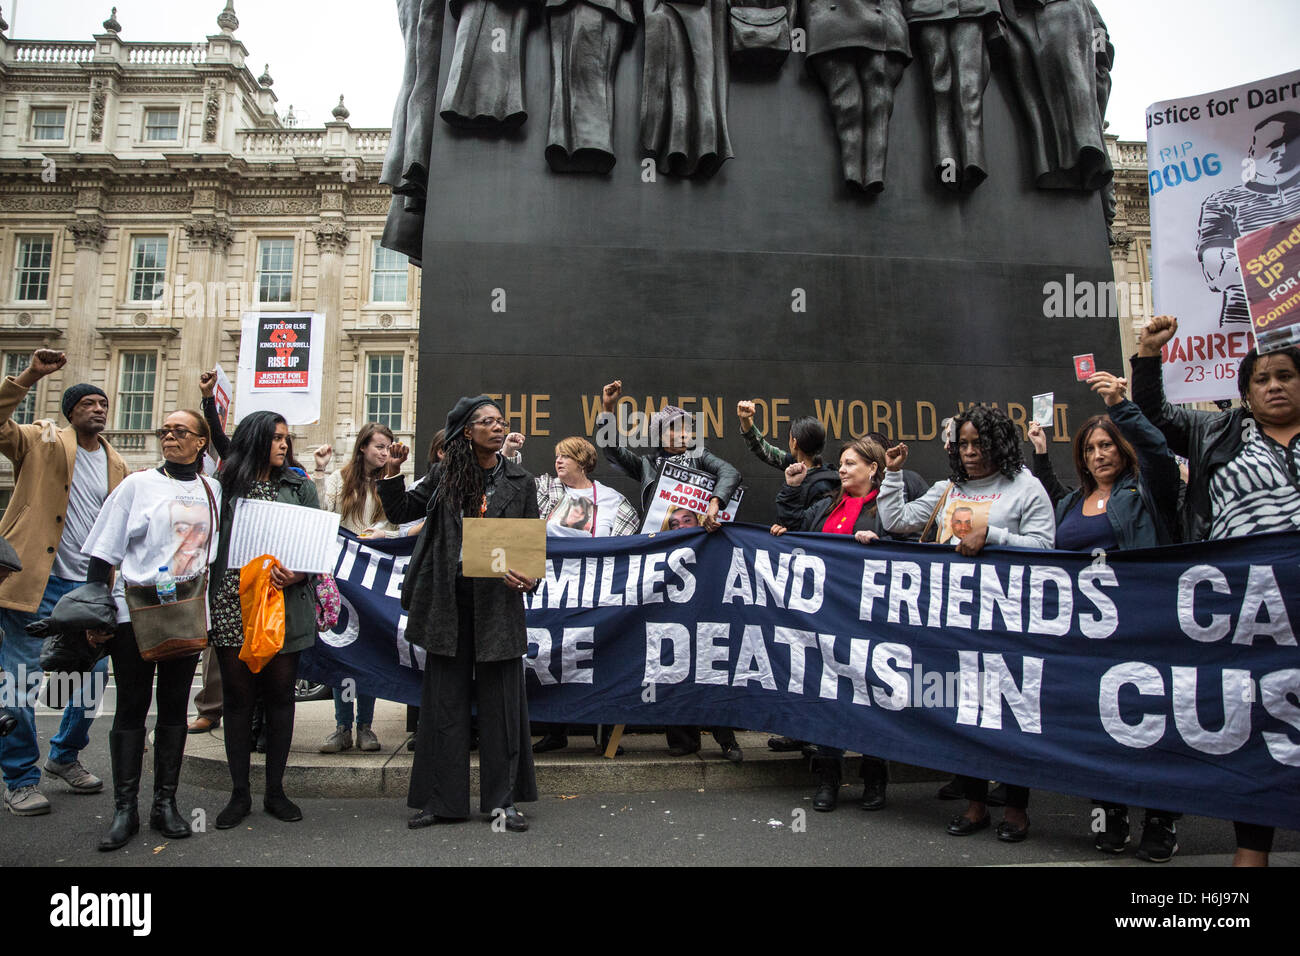 London, UK. 29th October, 2016. Campaigners from the United Families and Friends Campaign (UFFC) in front of the - Stock Image